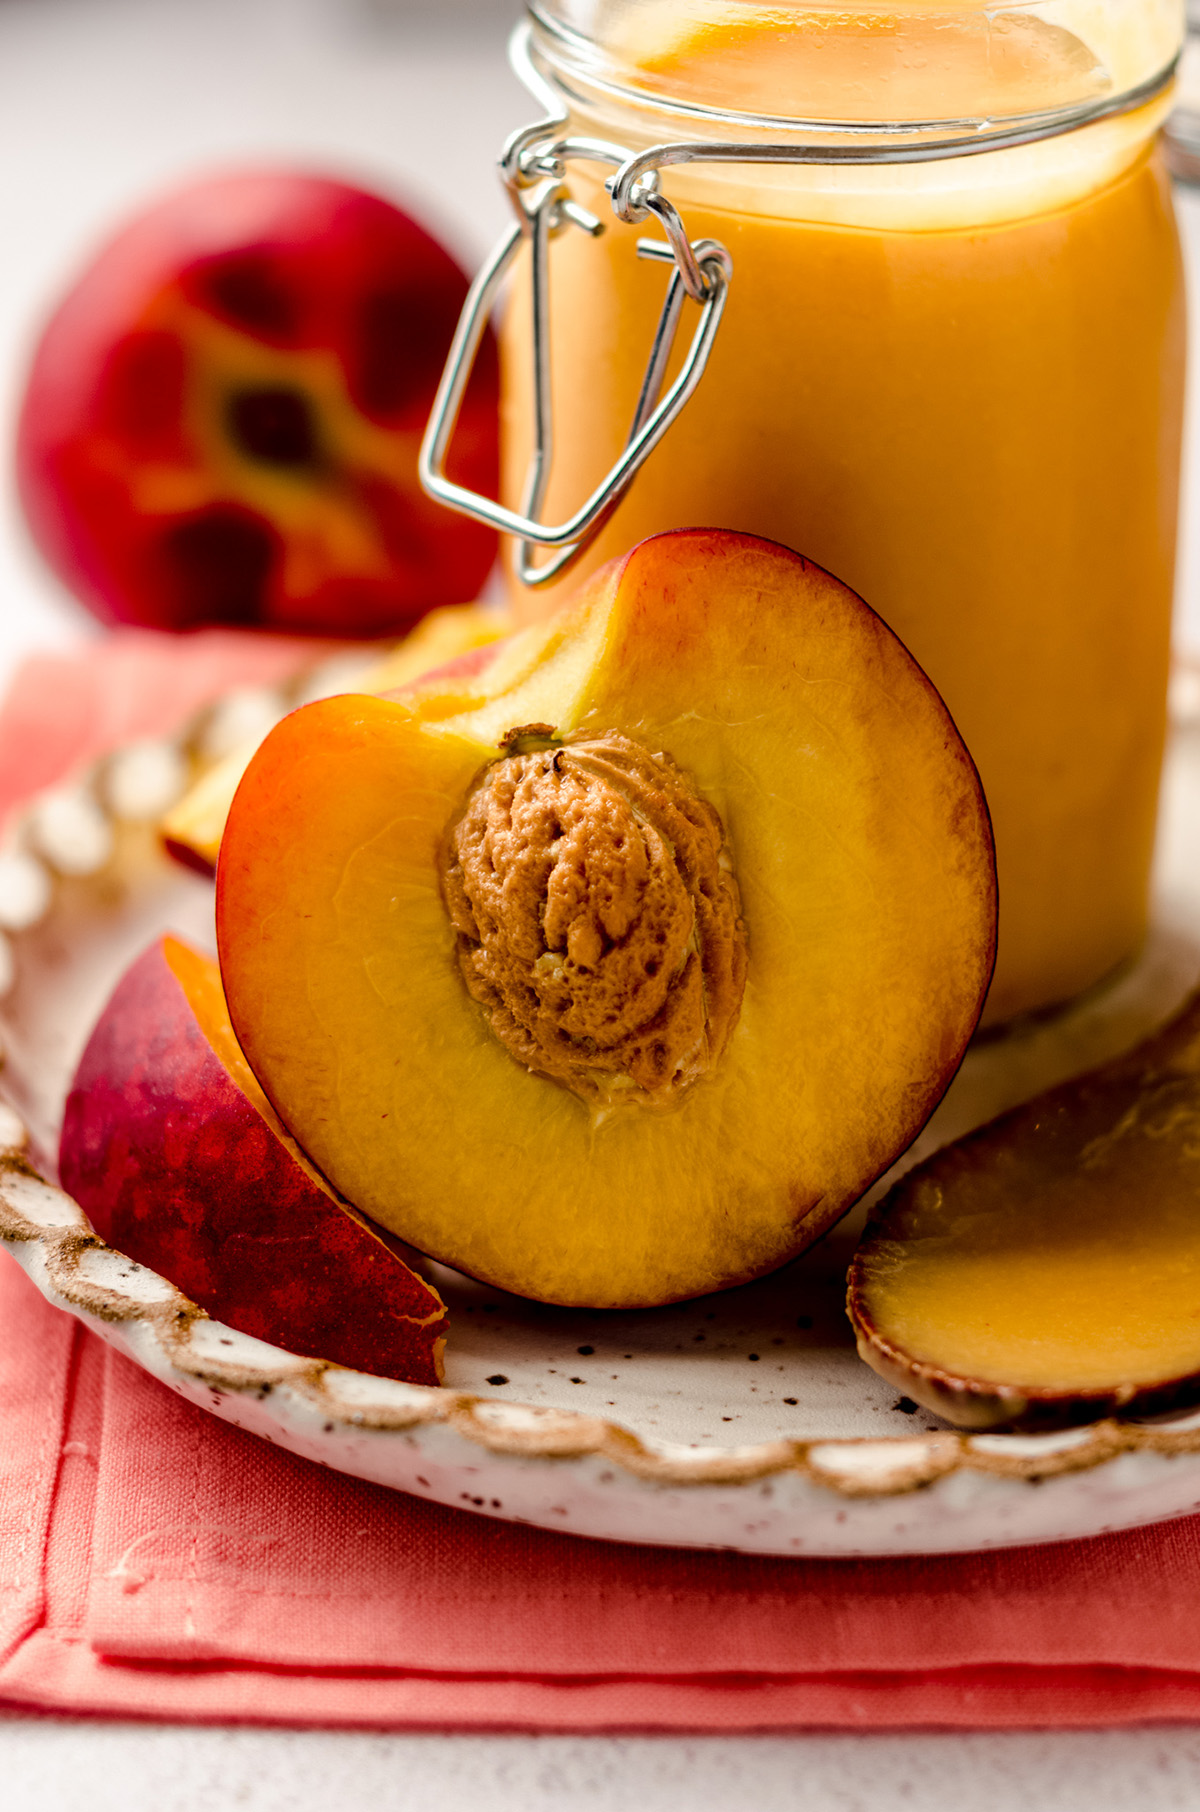 a peach sliced in half with a jar of peach curd in the background